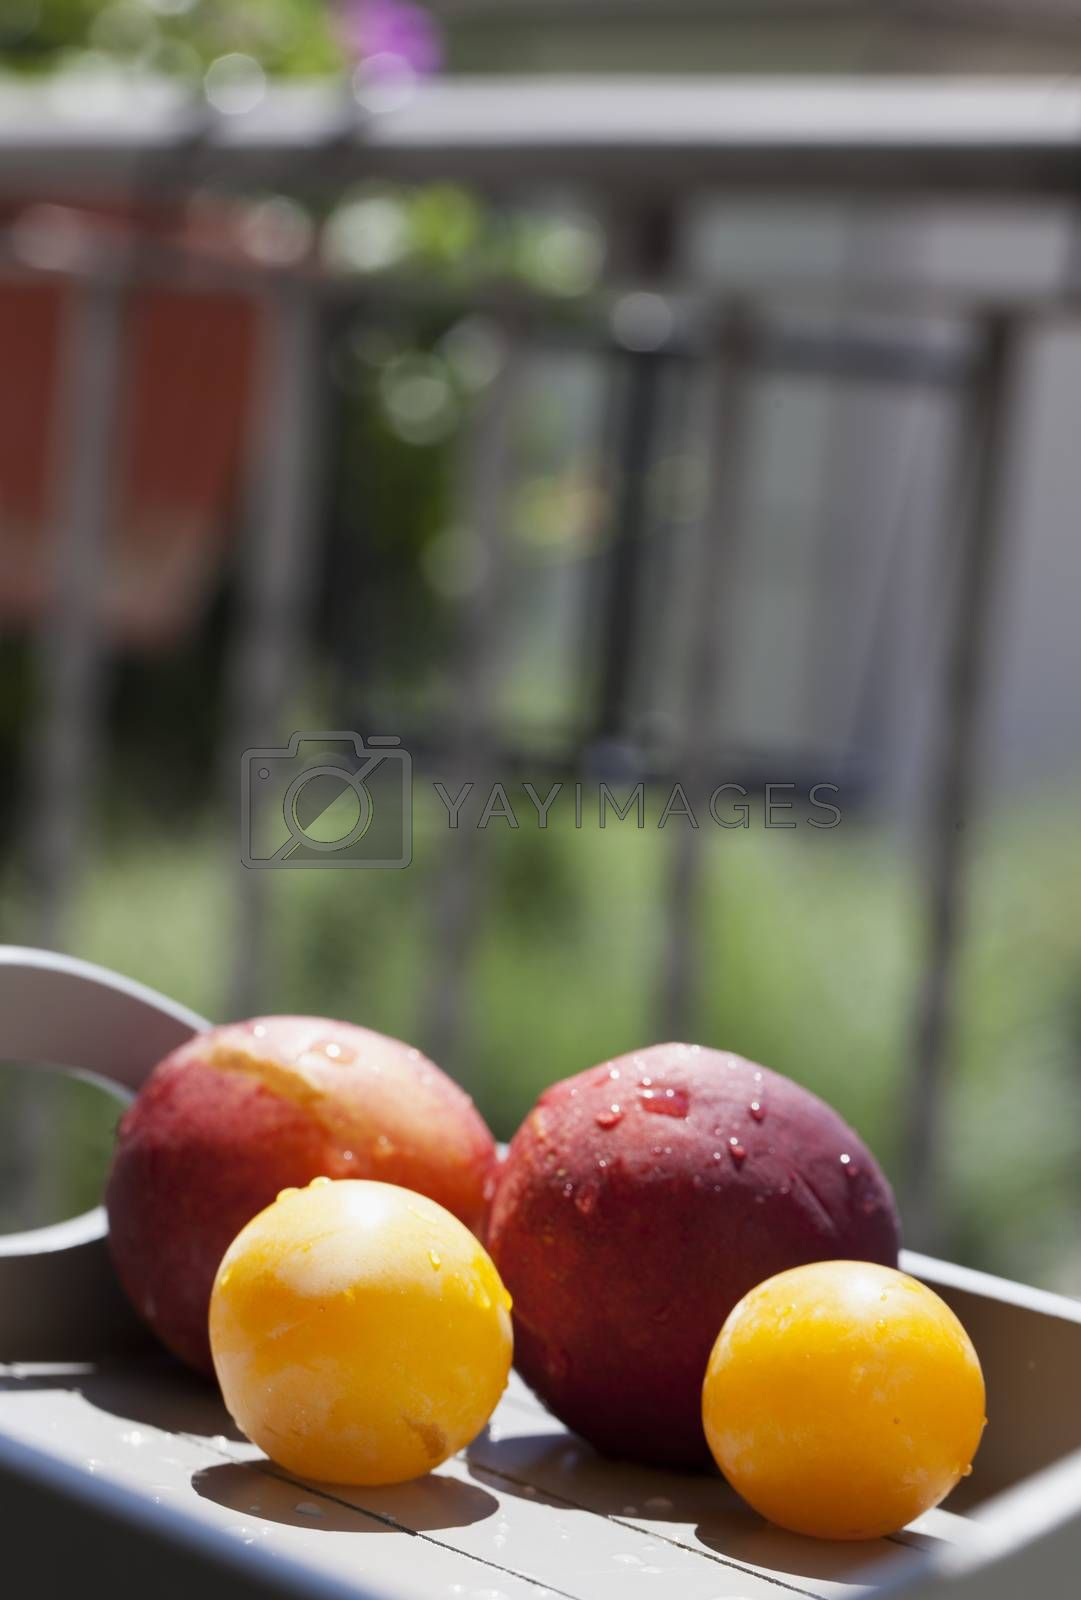 Royalty free image of Fruits by Koufax73